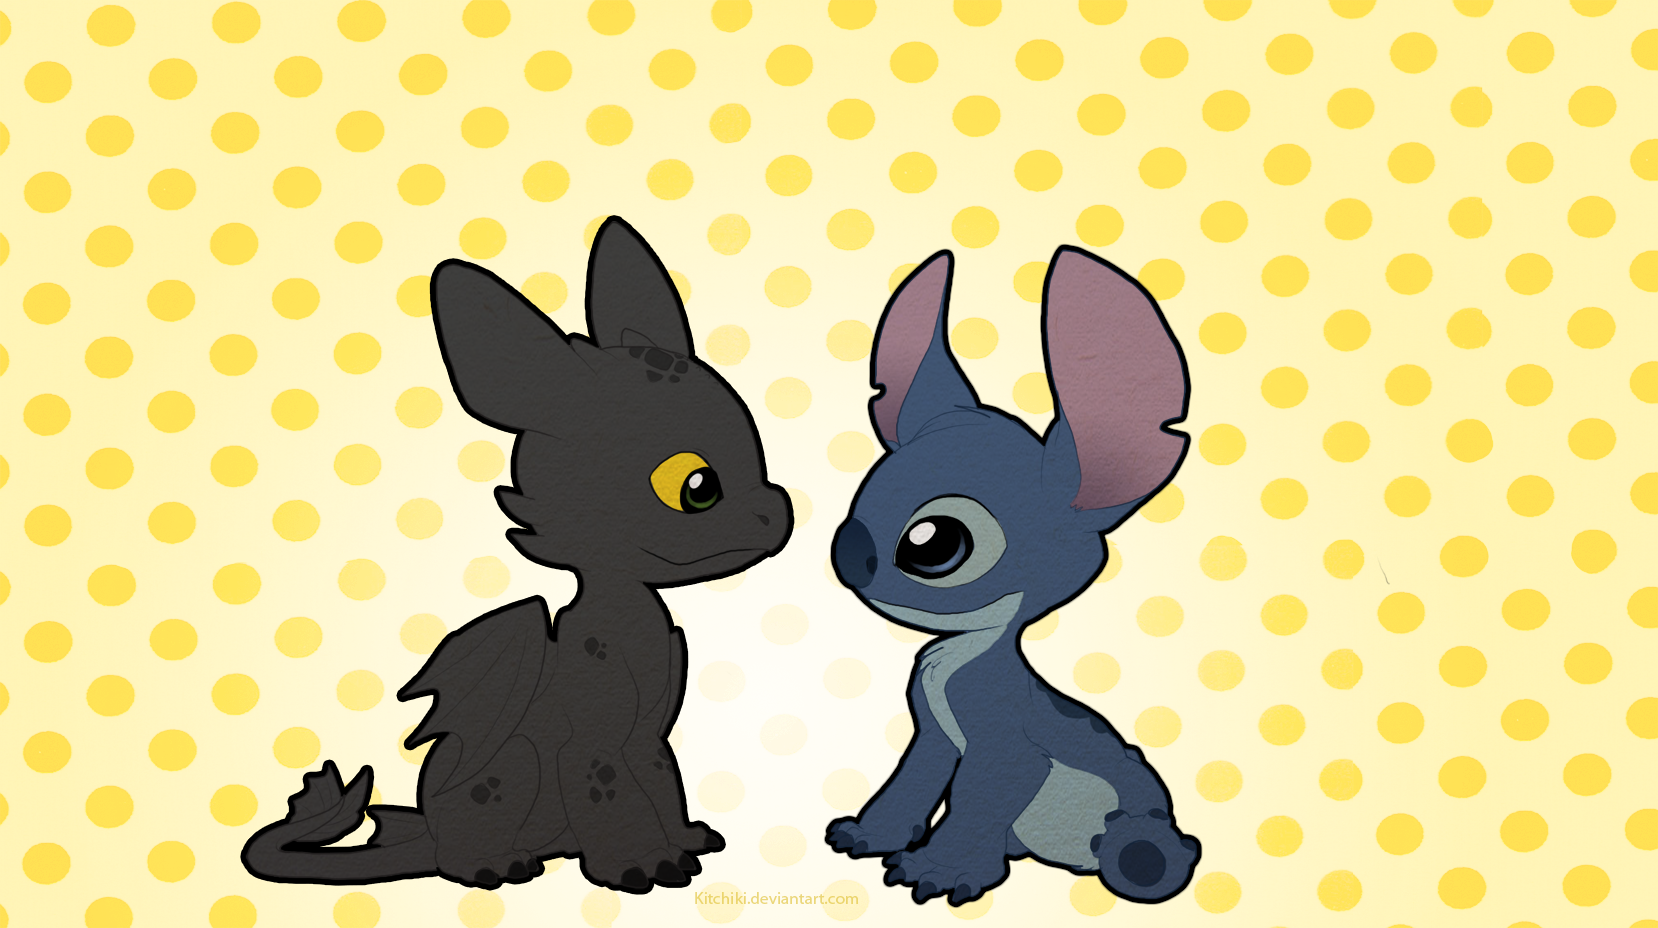 Stitch And Toothless By Kitchiki On DeviantArt